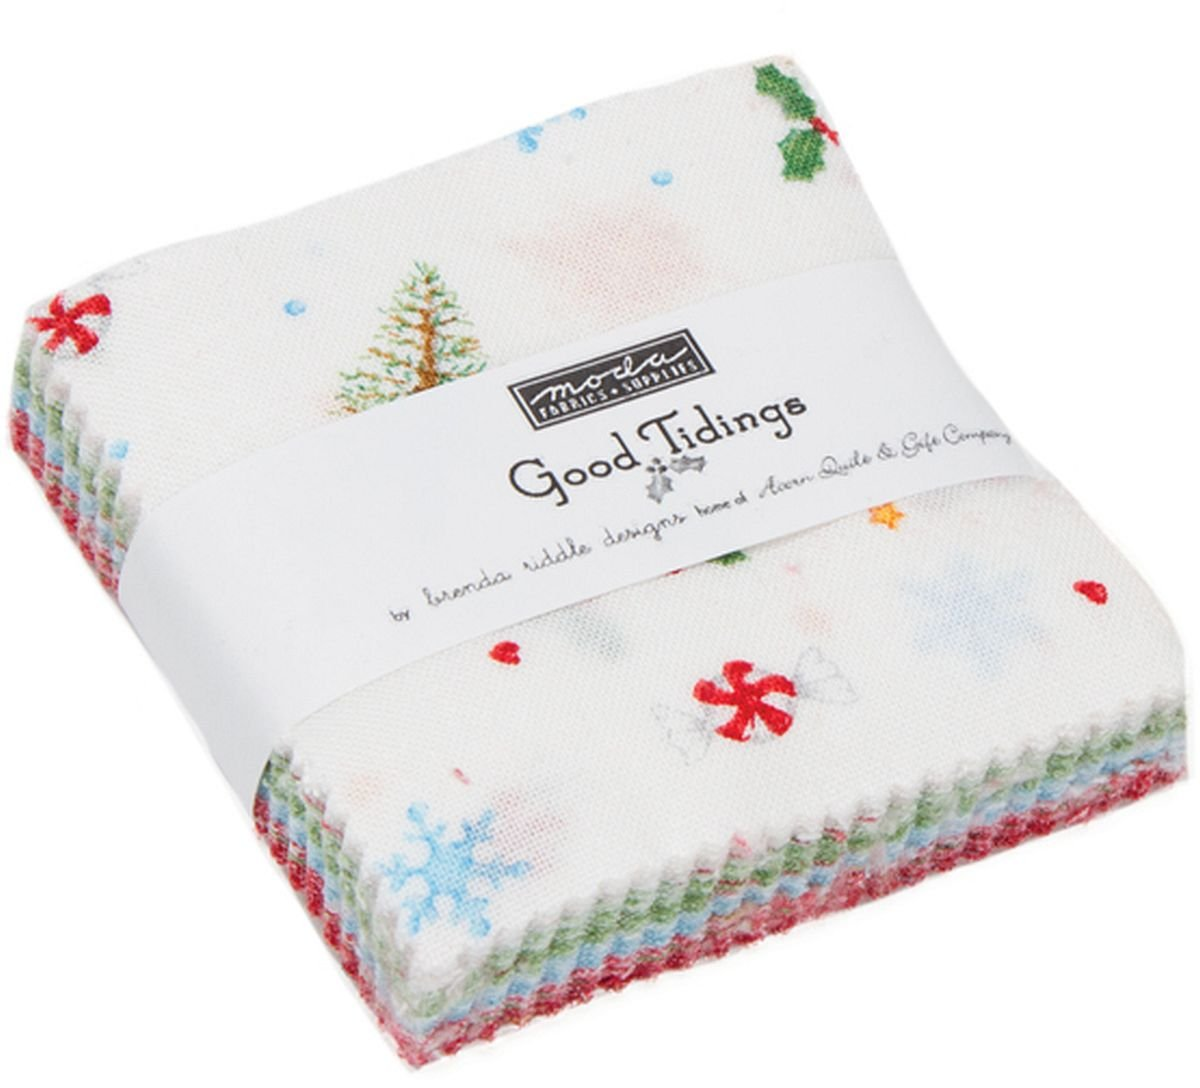 Good Tidings Mini Charm Pack by Brenda Riddle Designs; 42-2.5 Inch Precut Fabric Quilt Squares United Notions 18660MC